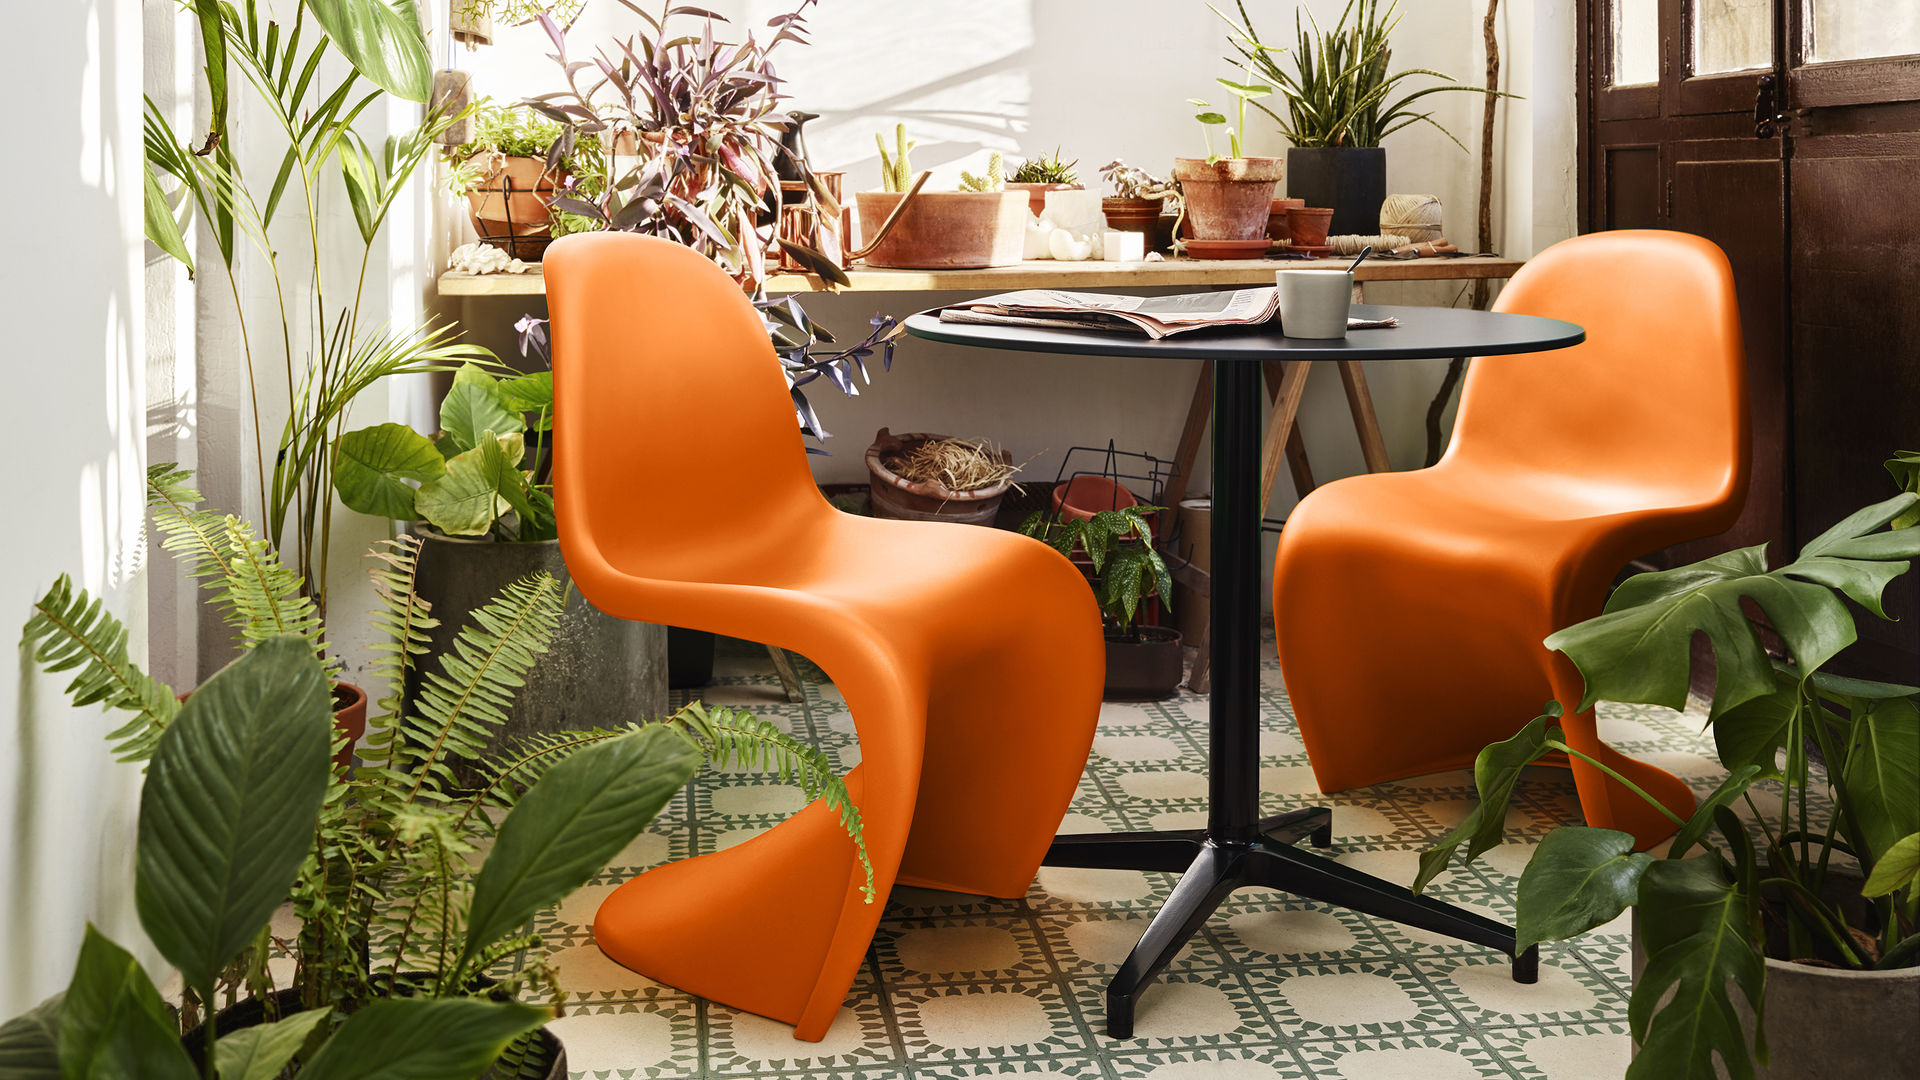 Panton Chair Tangerine 27_web_16-9